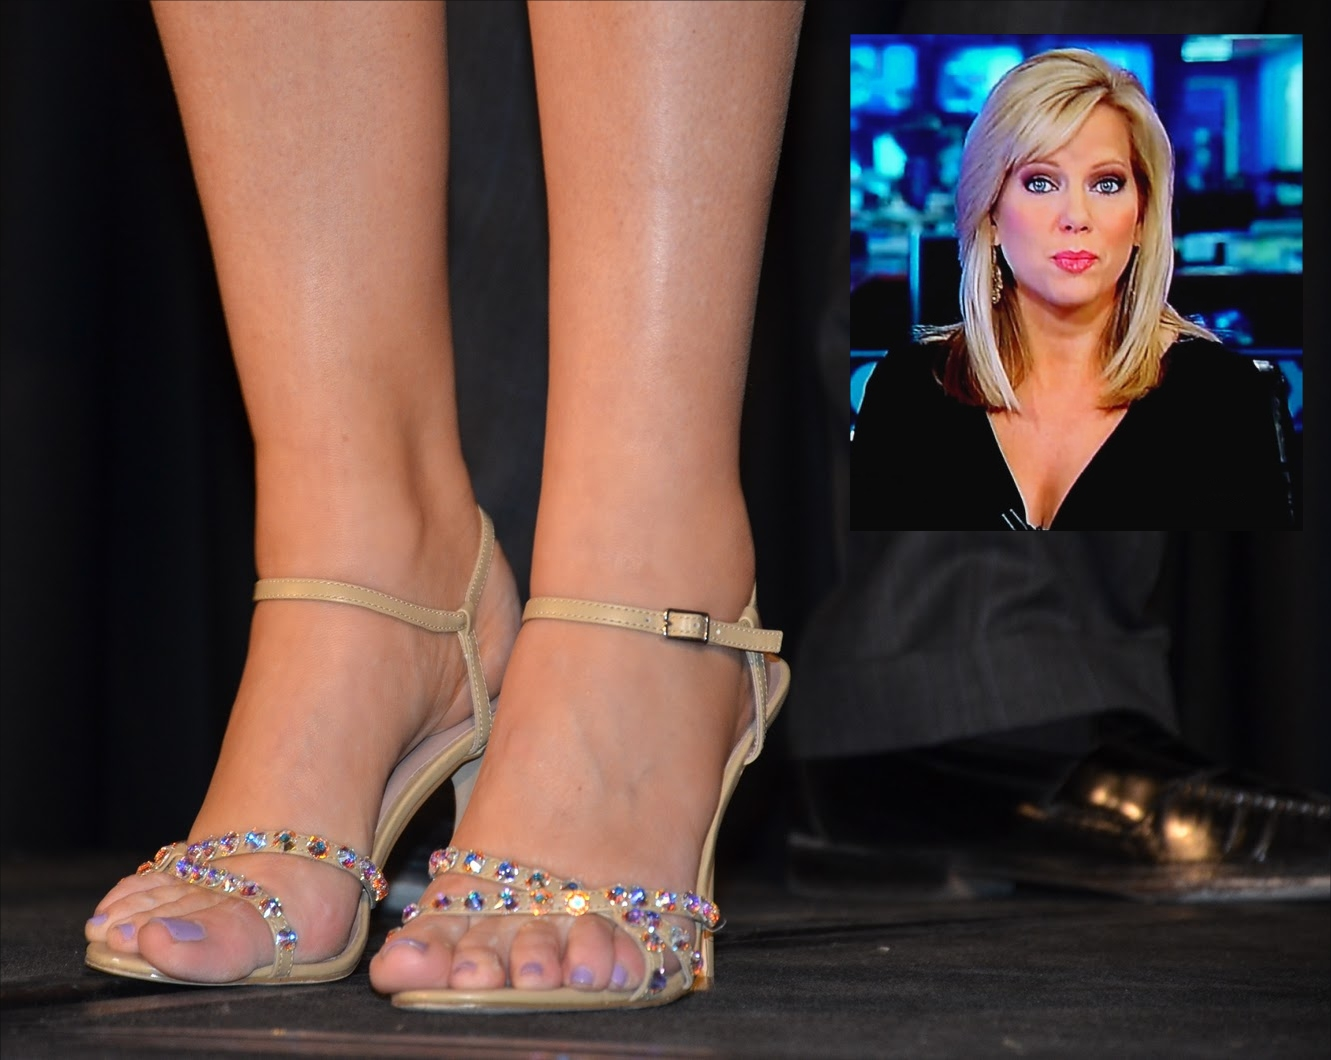 Shannon Bream Photo http://www.wikifeet.com/Shannon_Bream